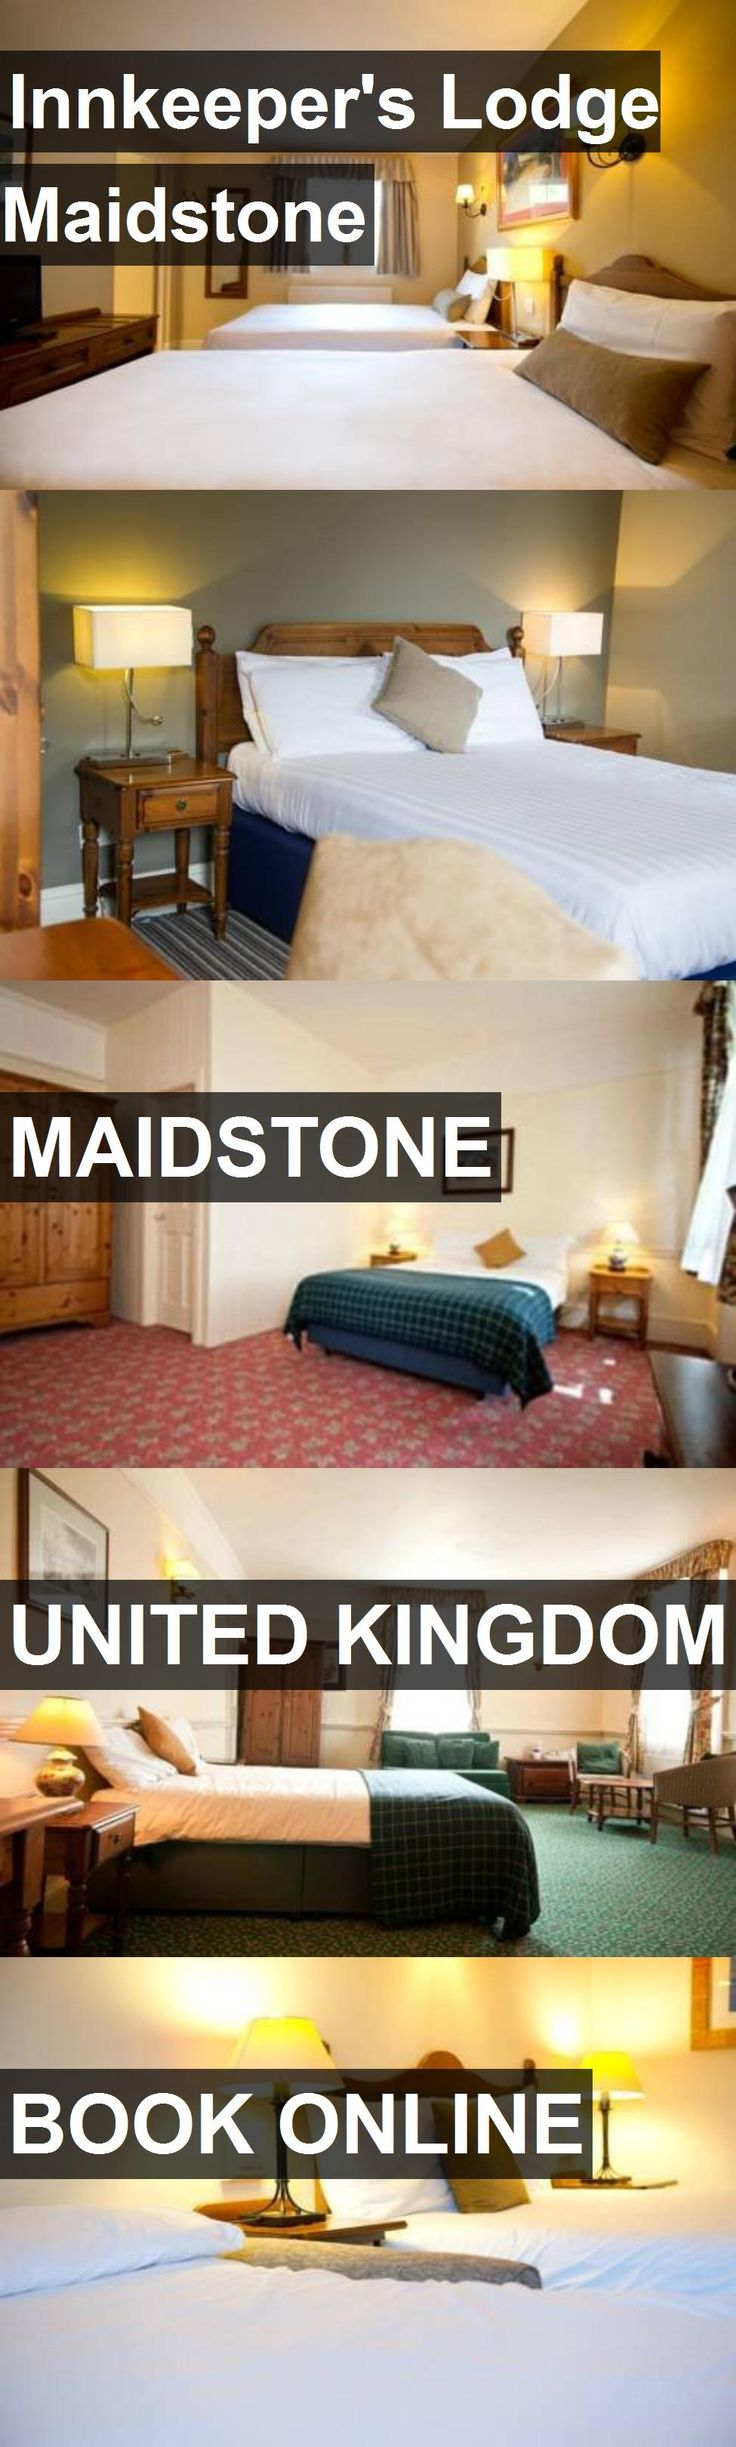 Hotel Innkeeper's Lodge Maidstone in Maidstone, United Kingdom. For more information, photos, reviews and best prices please follow the link. #UnitedKingdom #Maidstone #travel #vacation #hotel